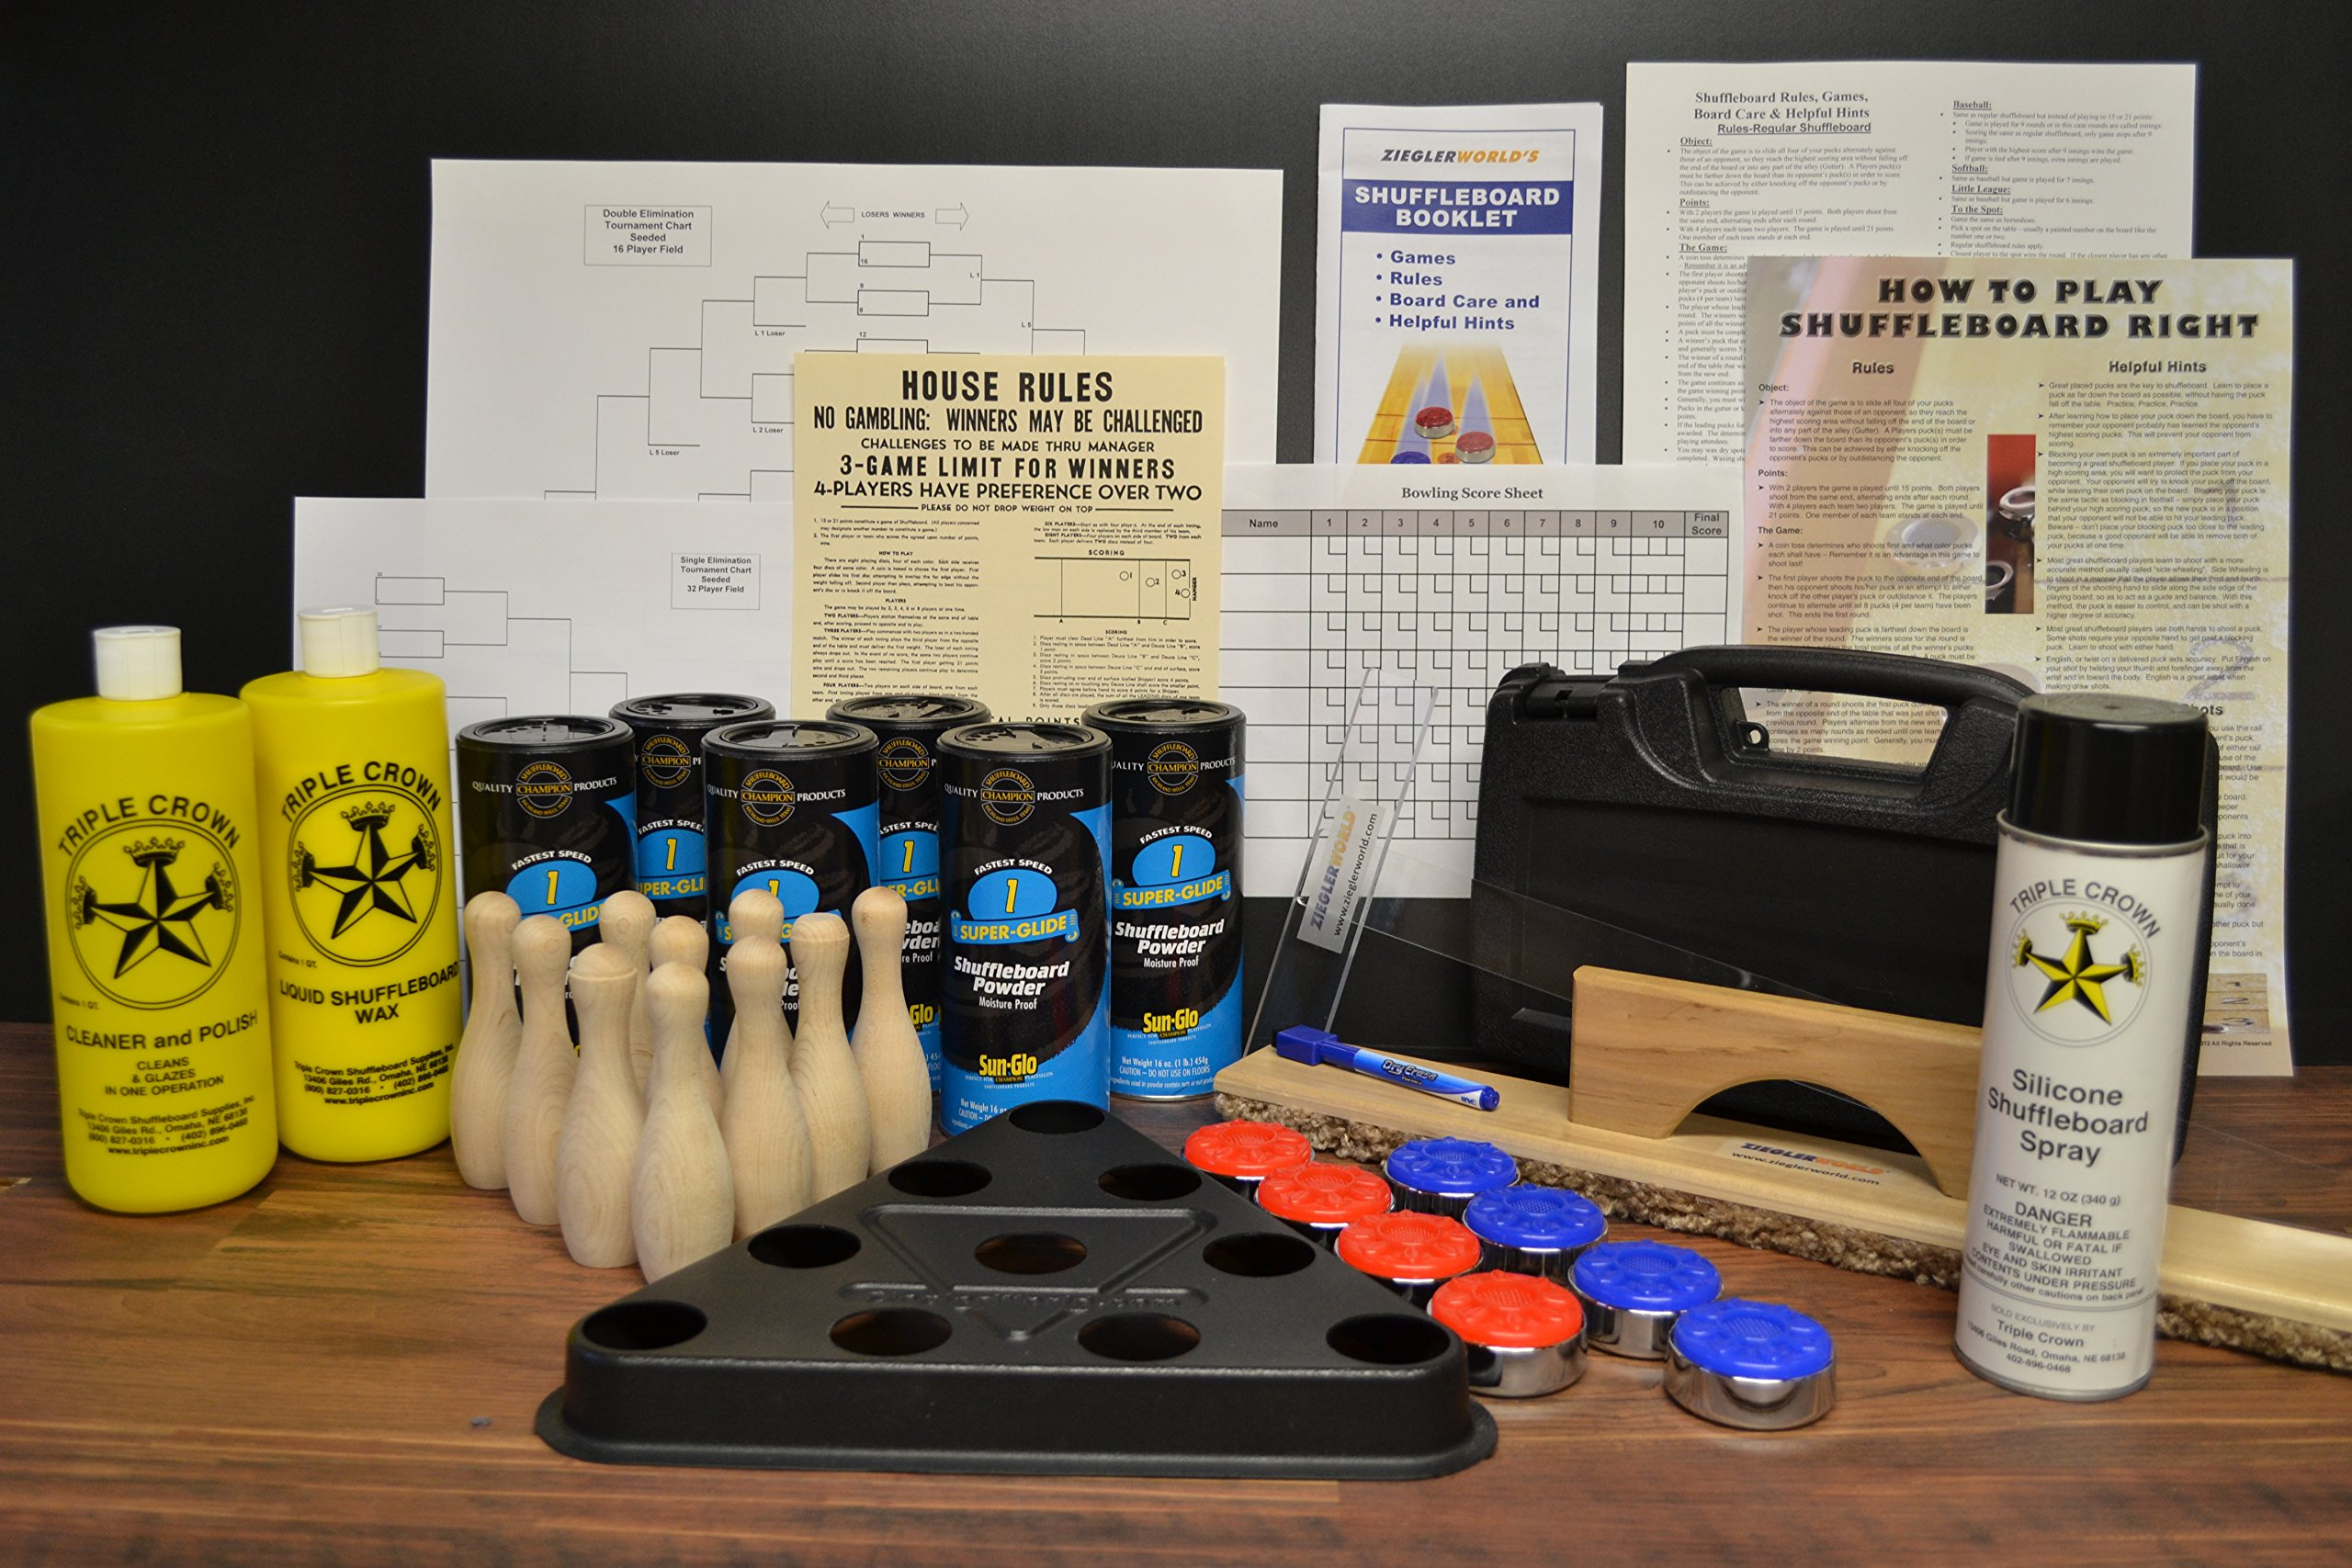 Table Shuffleboard Pucks - Weights Wax Everything Kit Package Deal! by Zieglerworld (Image #2)